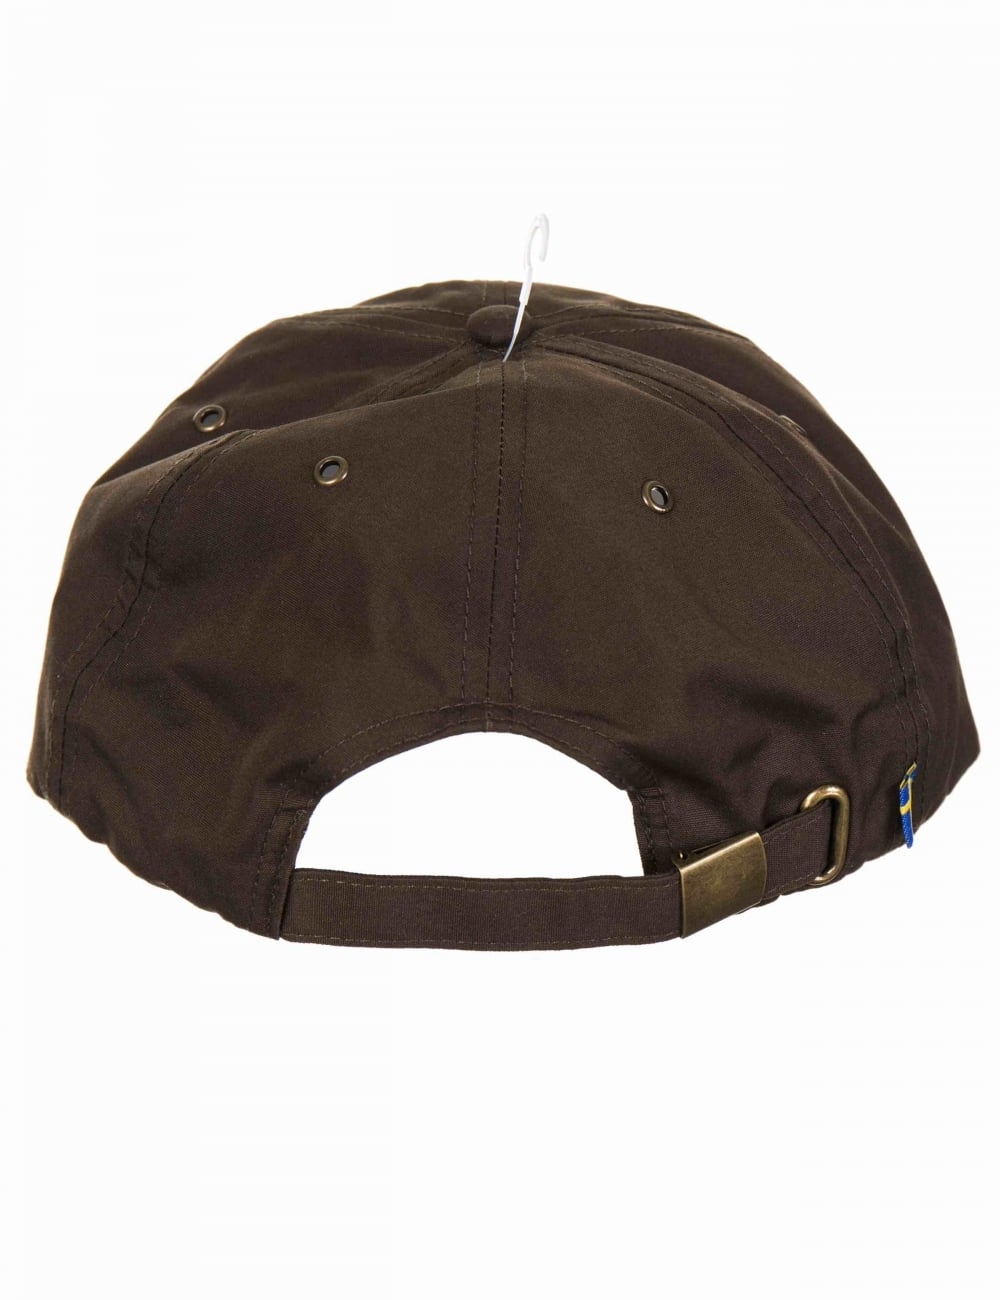 02b24c4be26 Fjallraven Helags Cap - Dark Olive - Hat Shop from Fat Buddha Store UK